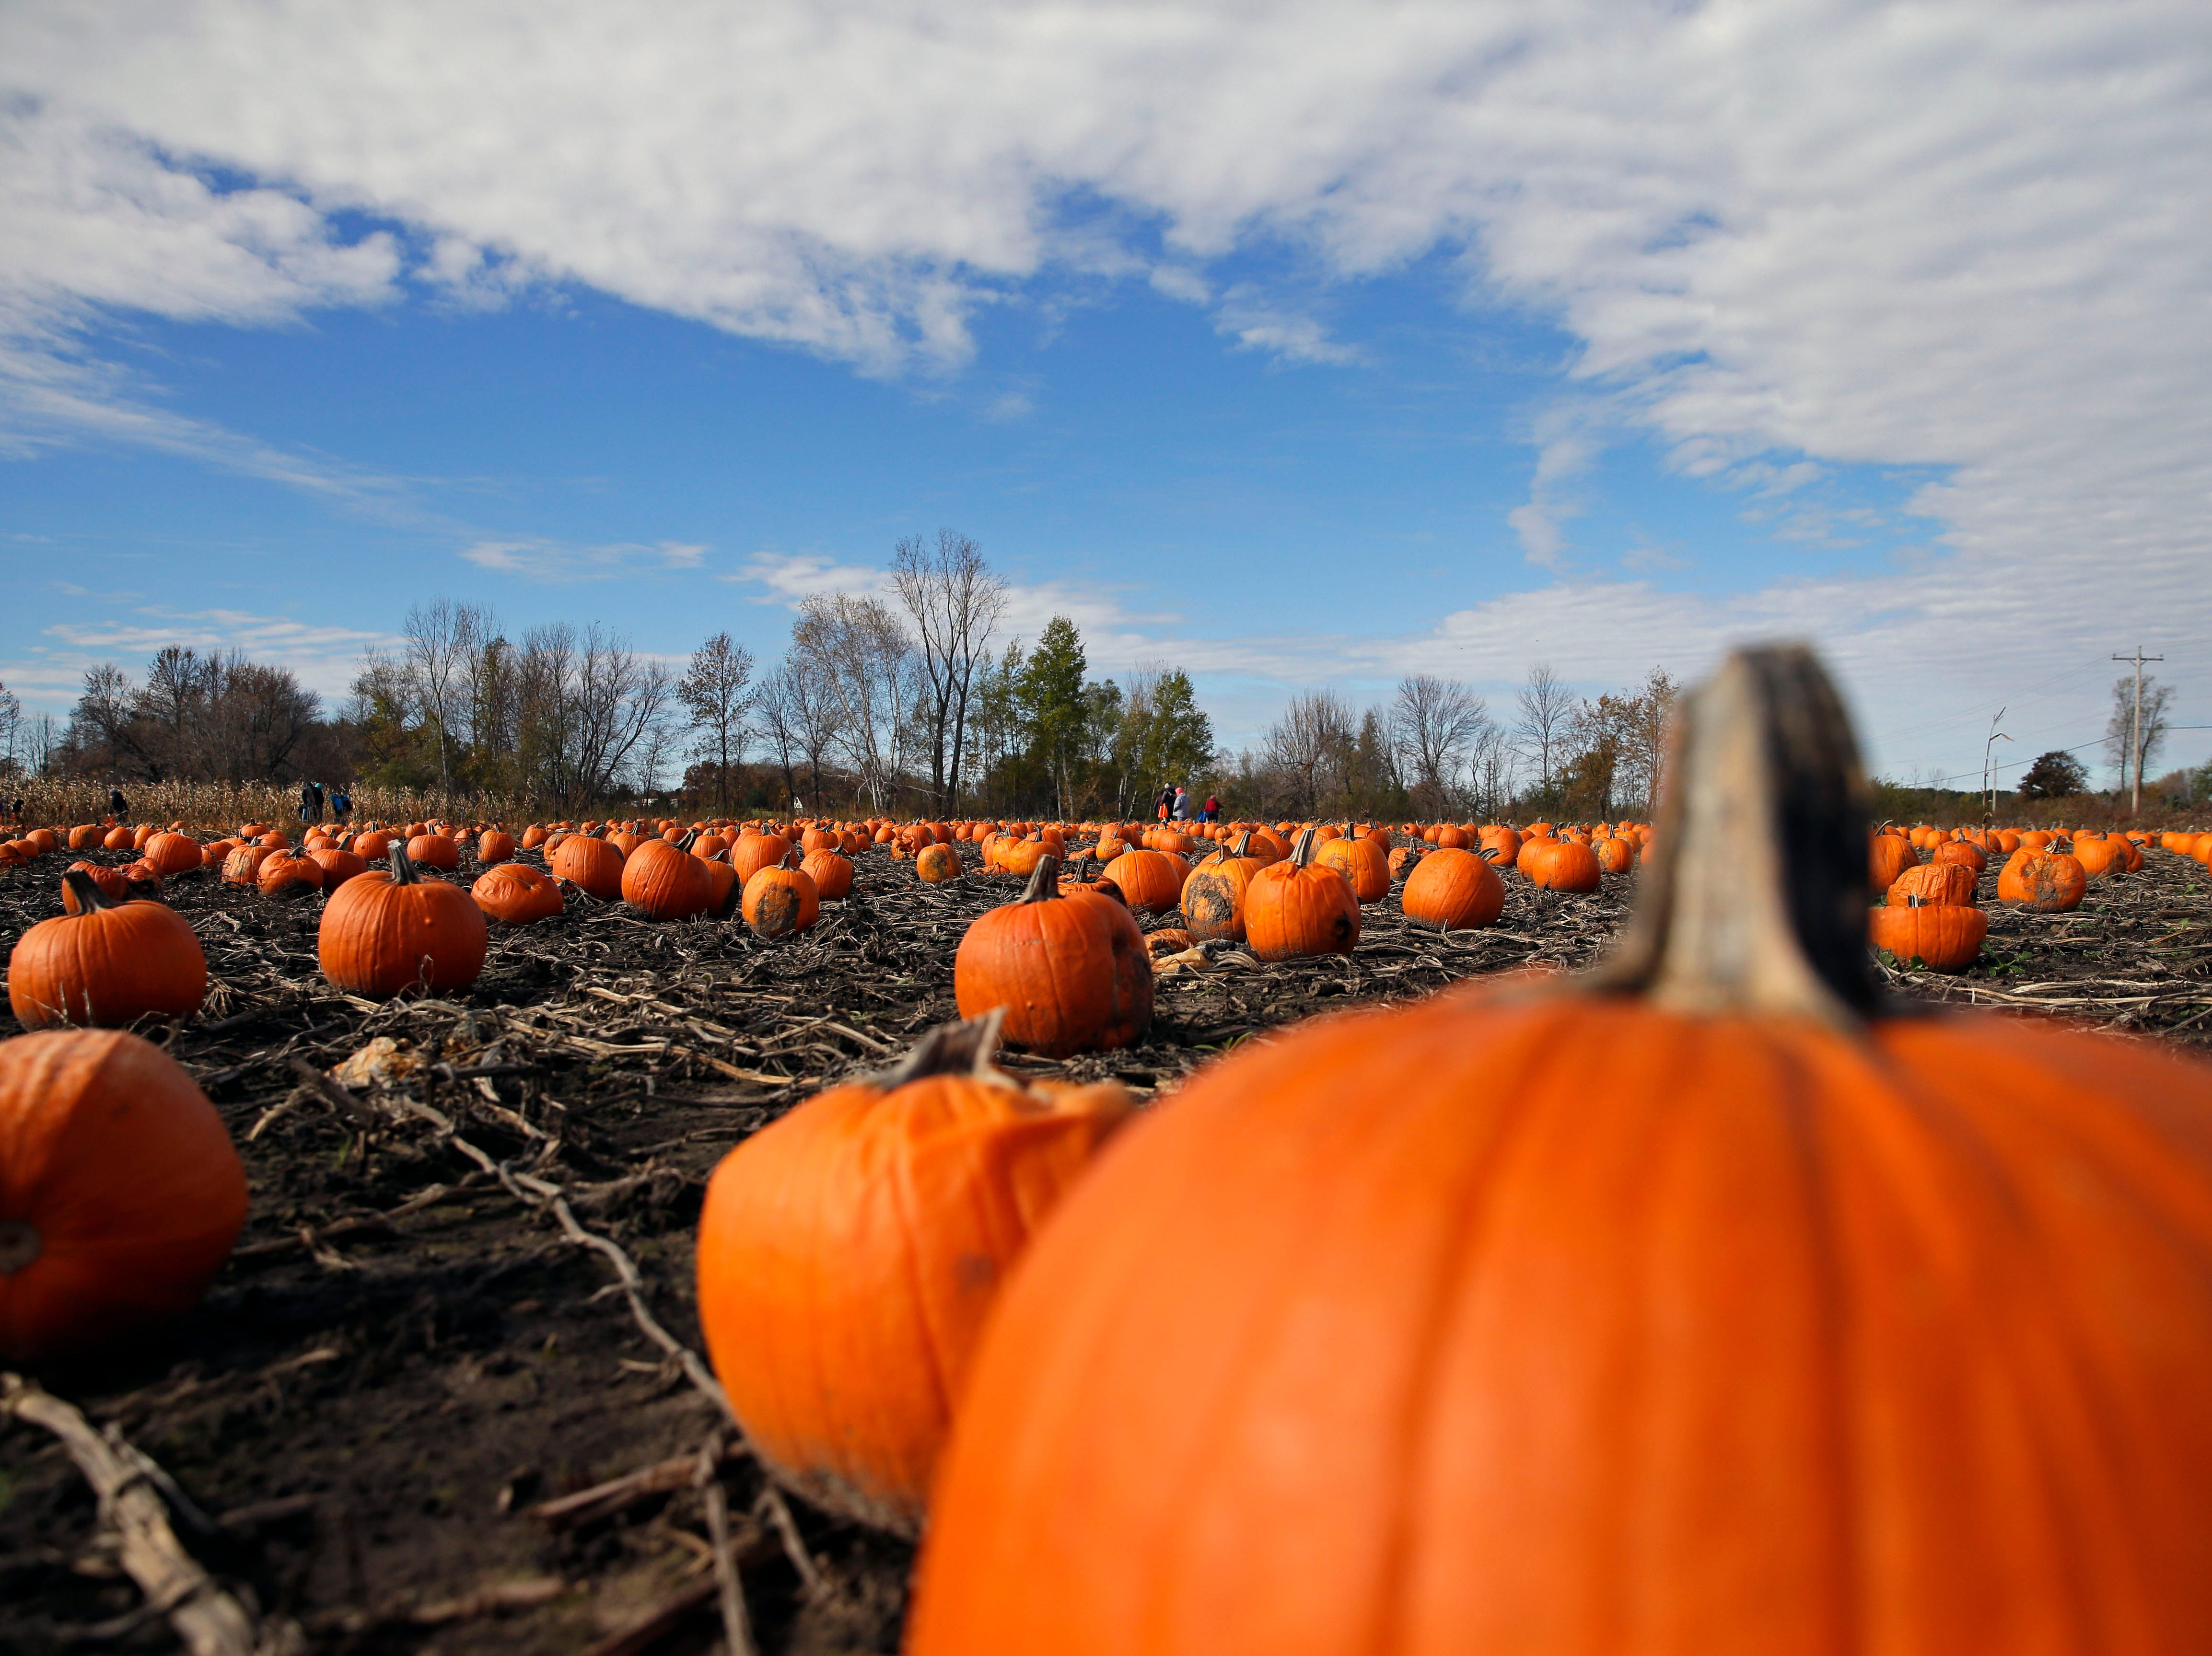 Picking pumpkins was on the agenda for many families Sunday, October 21, 2018, at Cuff Farms in Hortonville, Wis.